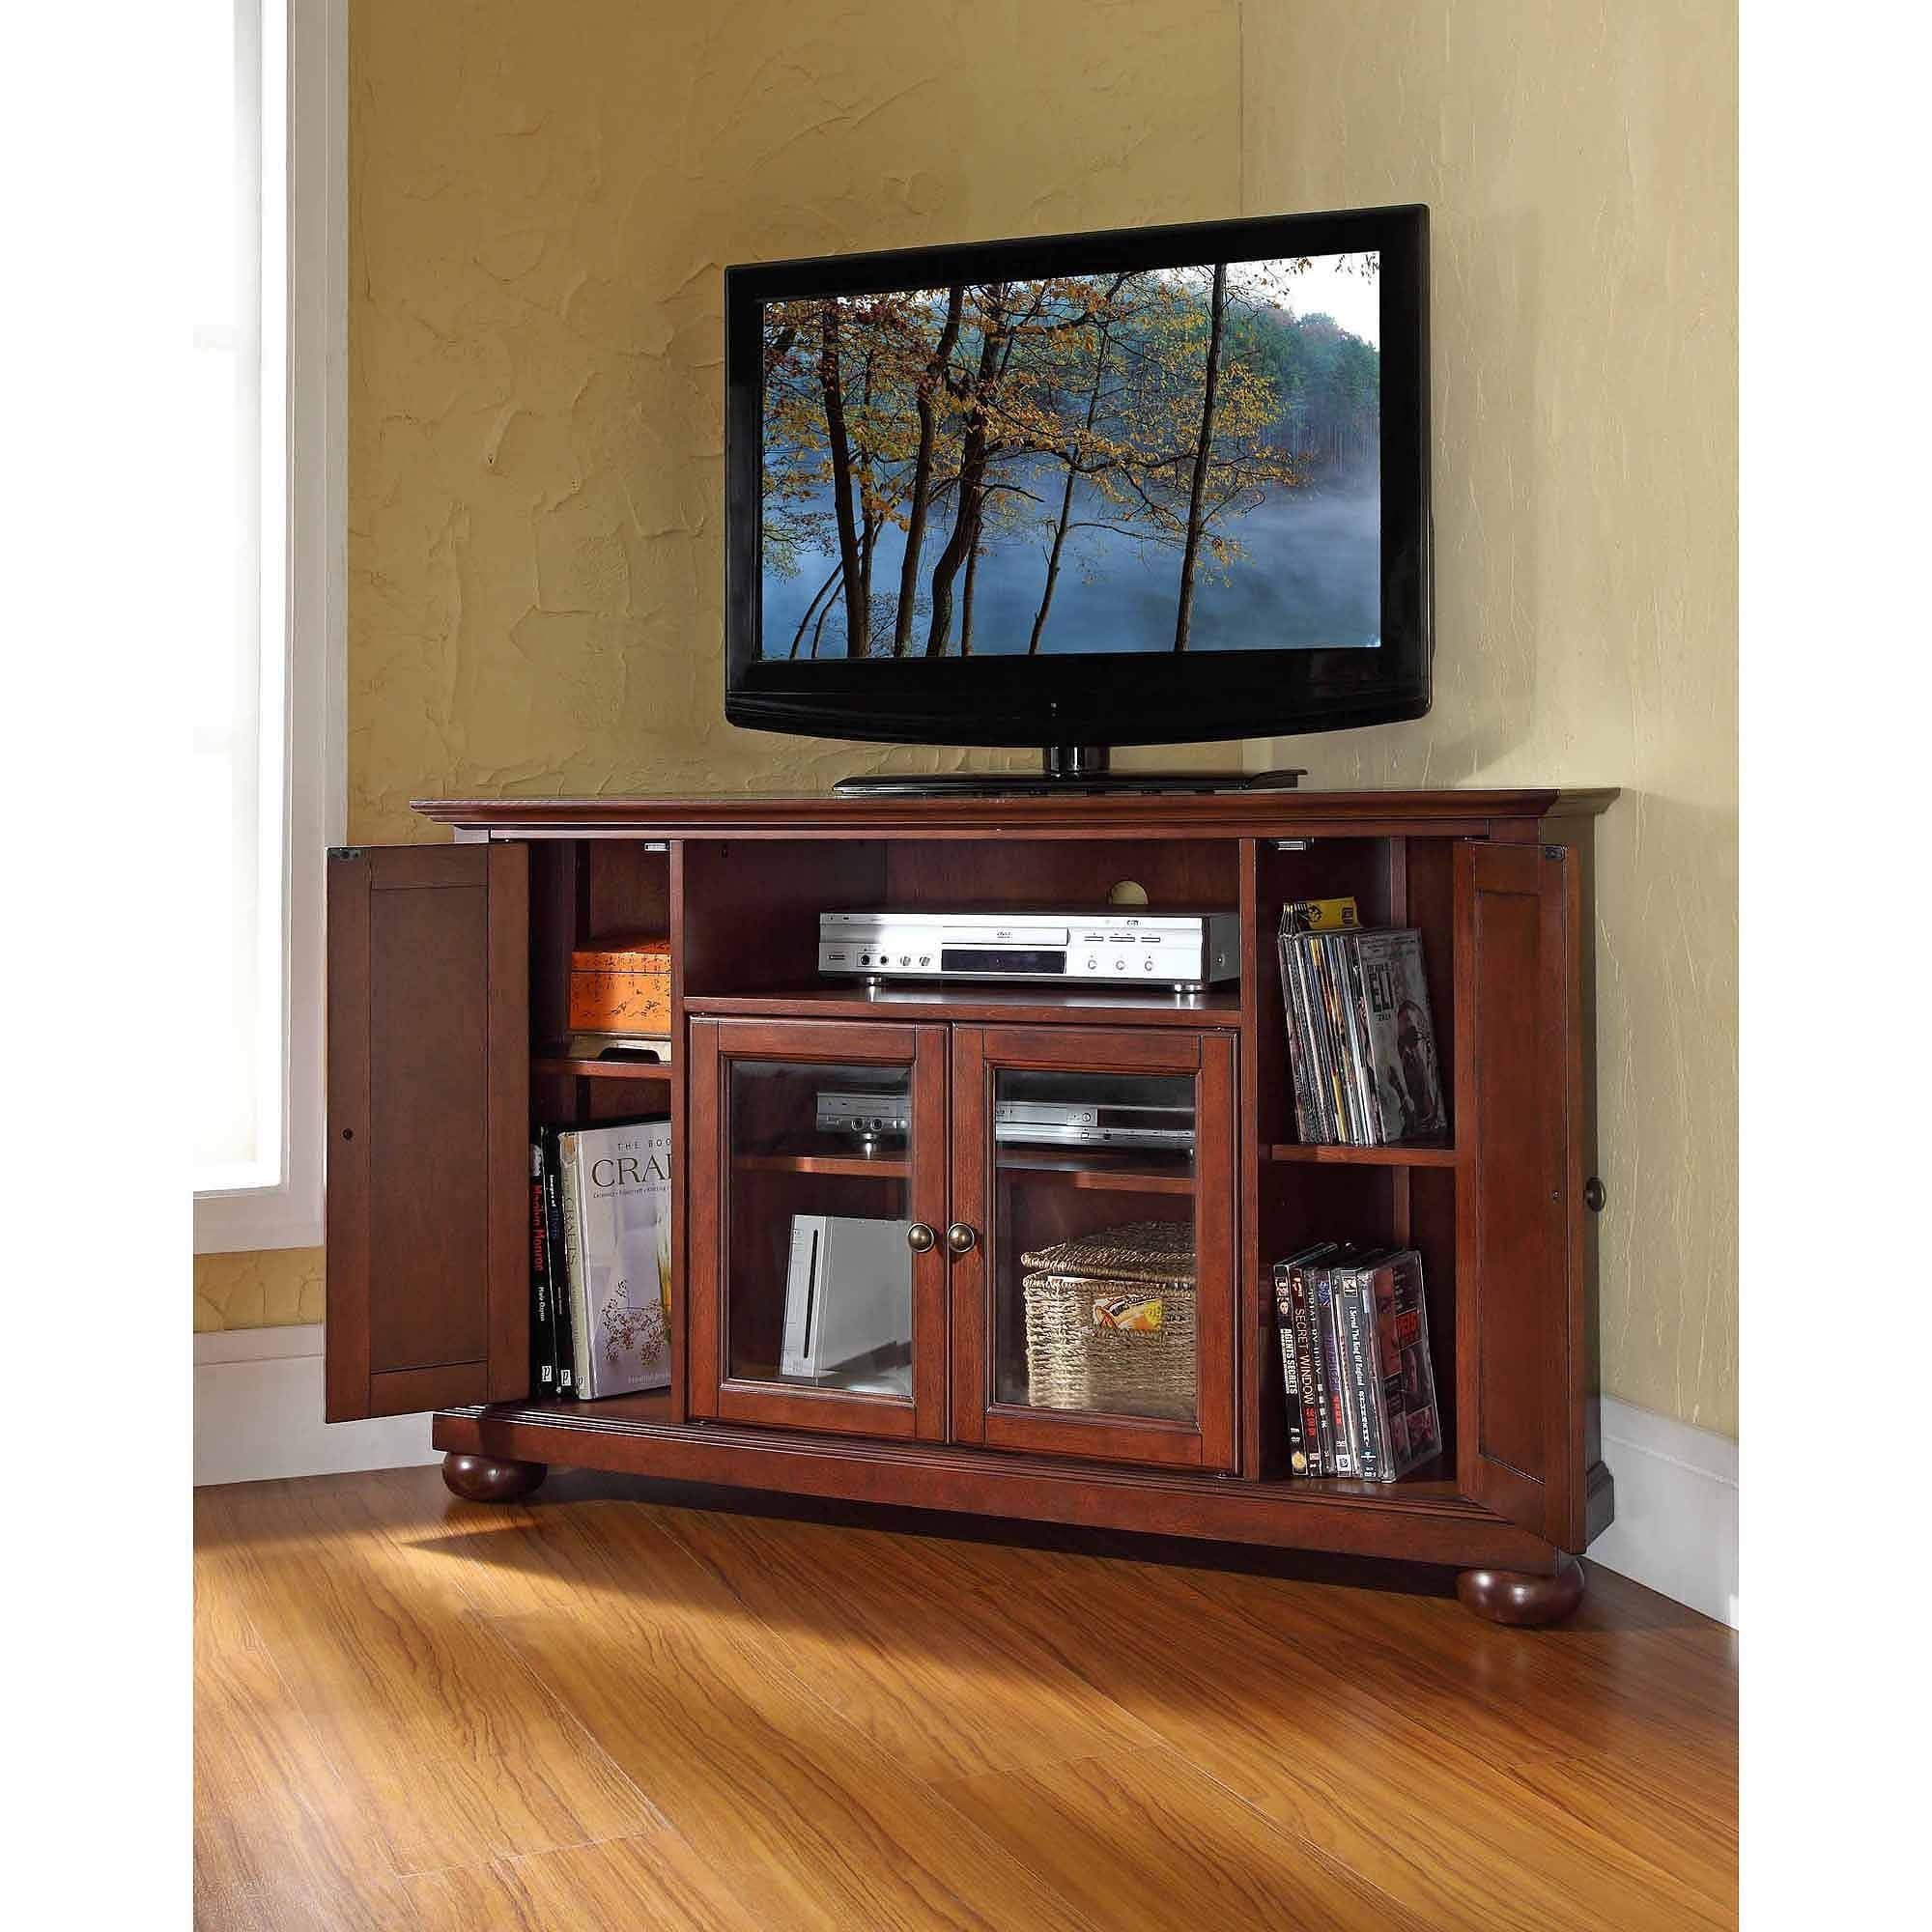 Crosley Furniture Alexandria Corner Tv Stand For Tvs Up To 48 with regard to Corner Tv Stands (Image 4 of 15)